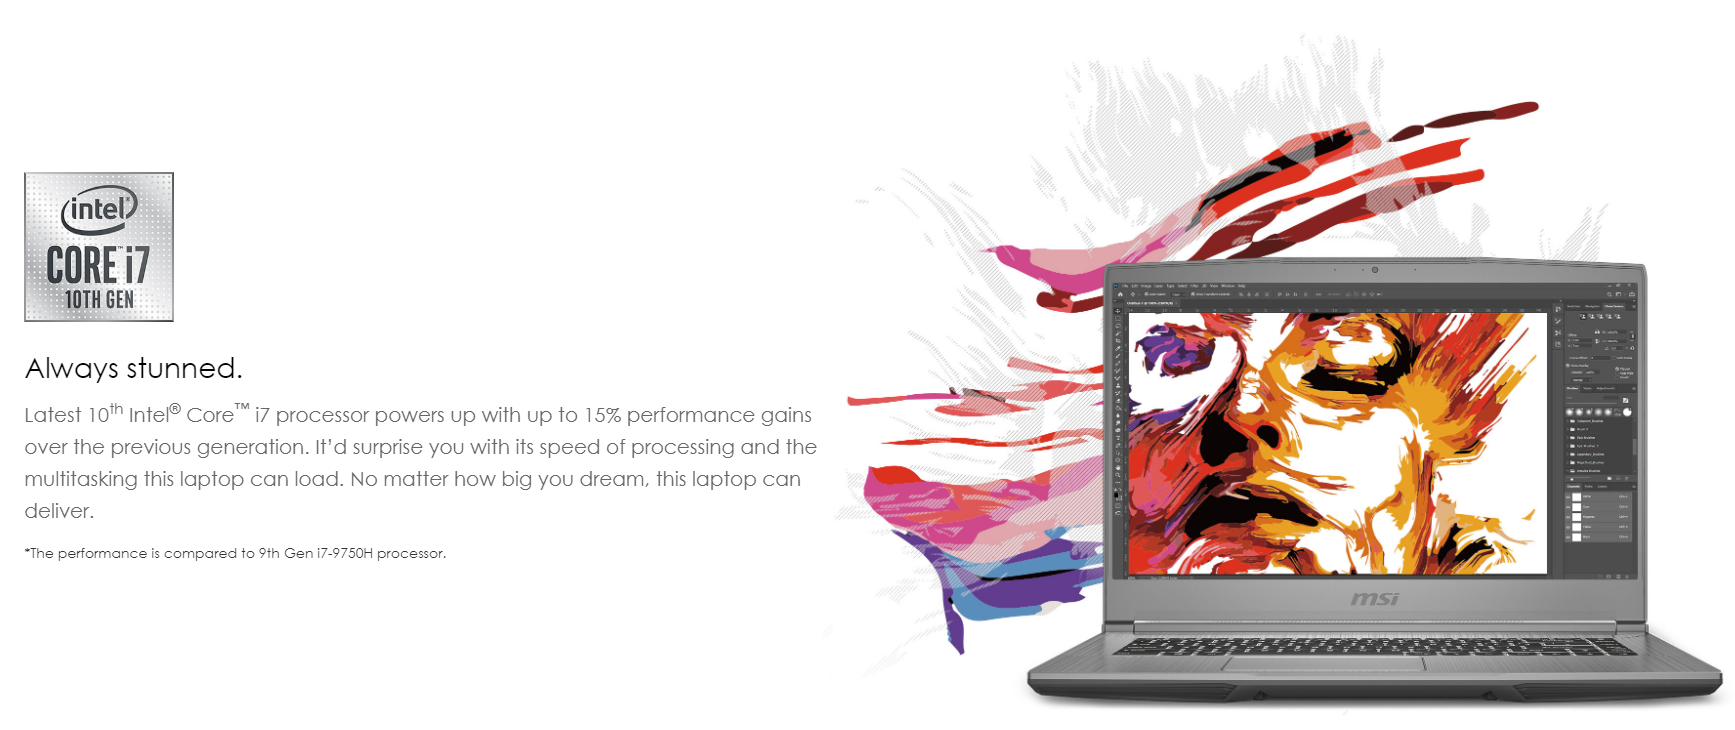 Latest 10th Intel® Core™ i7 processor powers up with up to 15% performance gains over the previous generation. It'd surprise you with its speed of processing and the multitasking this laptop can load. No matter how big you dream, this laptop can deliver.